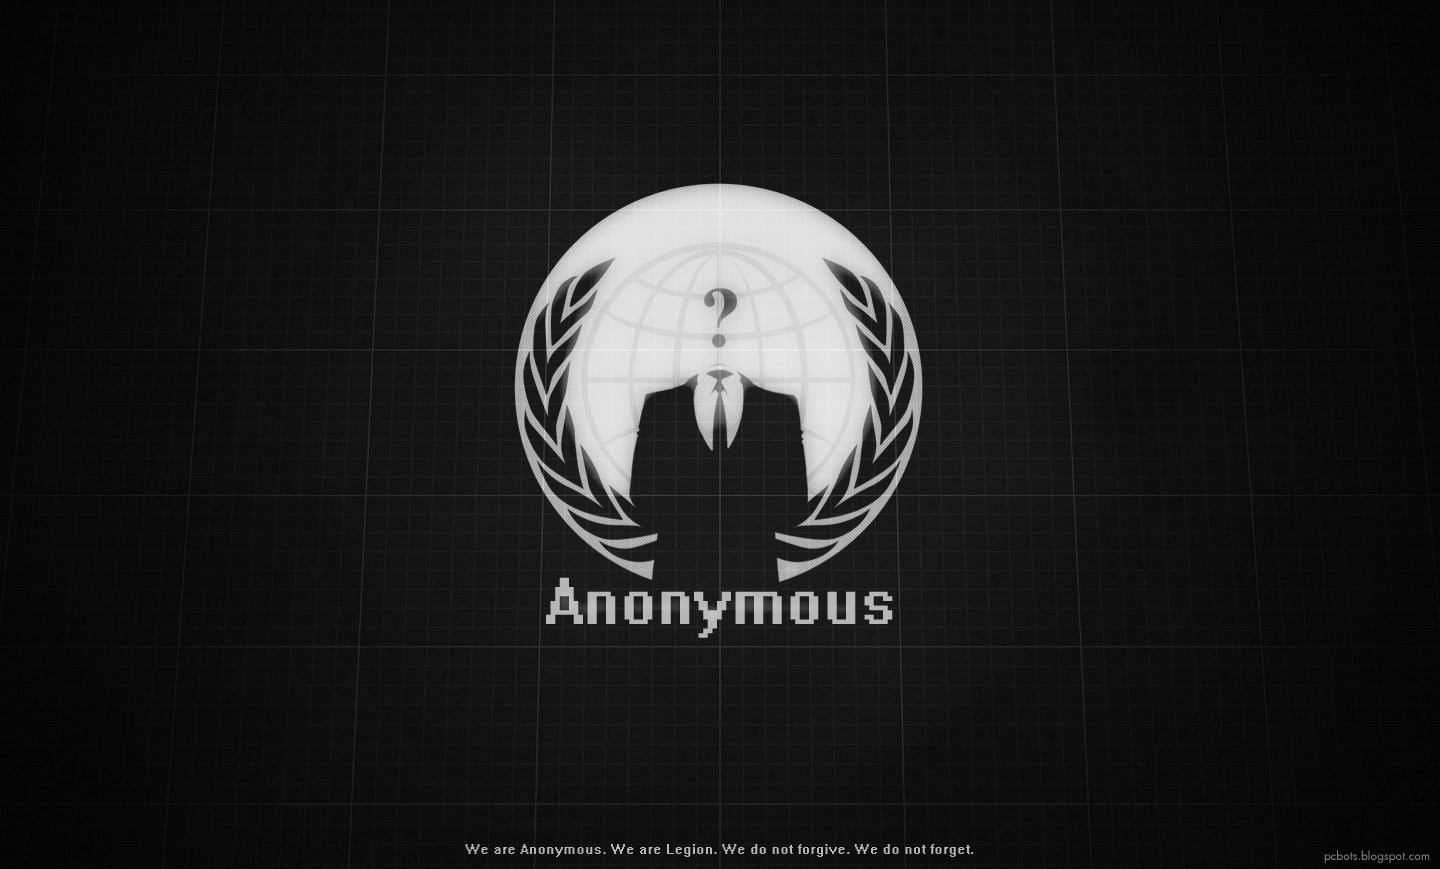 quotAnonymous wallpaper hd   We are Anonymous We are Legion 1440x869